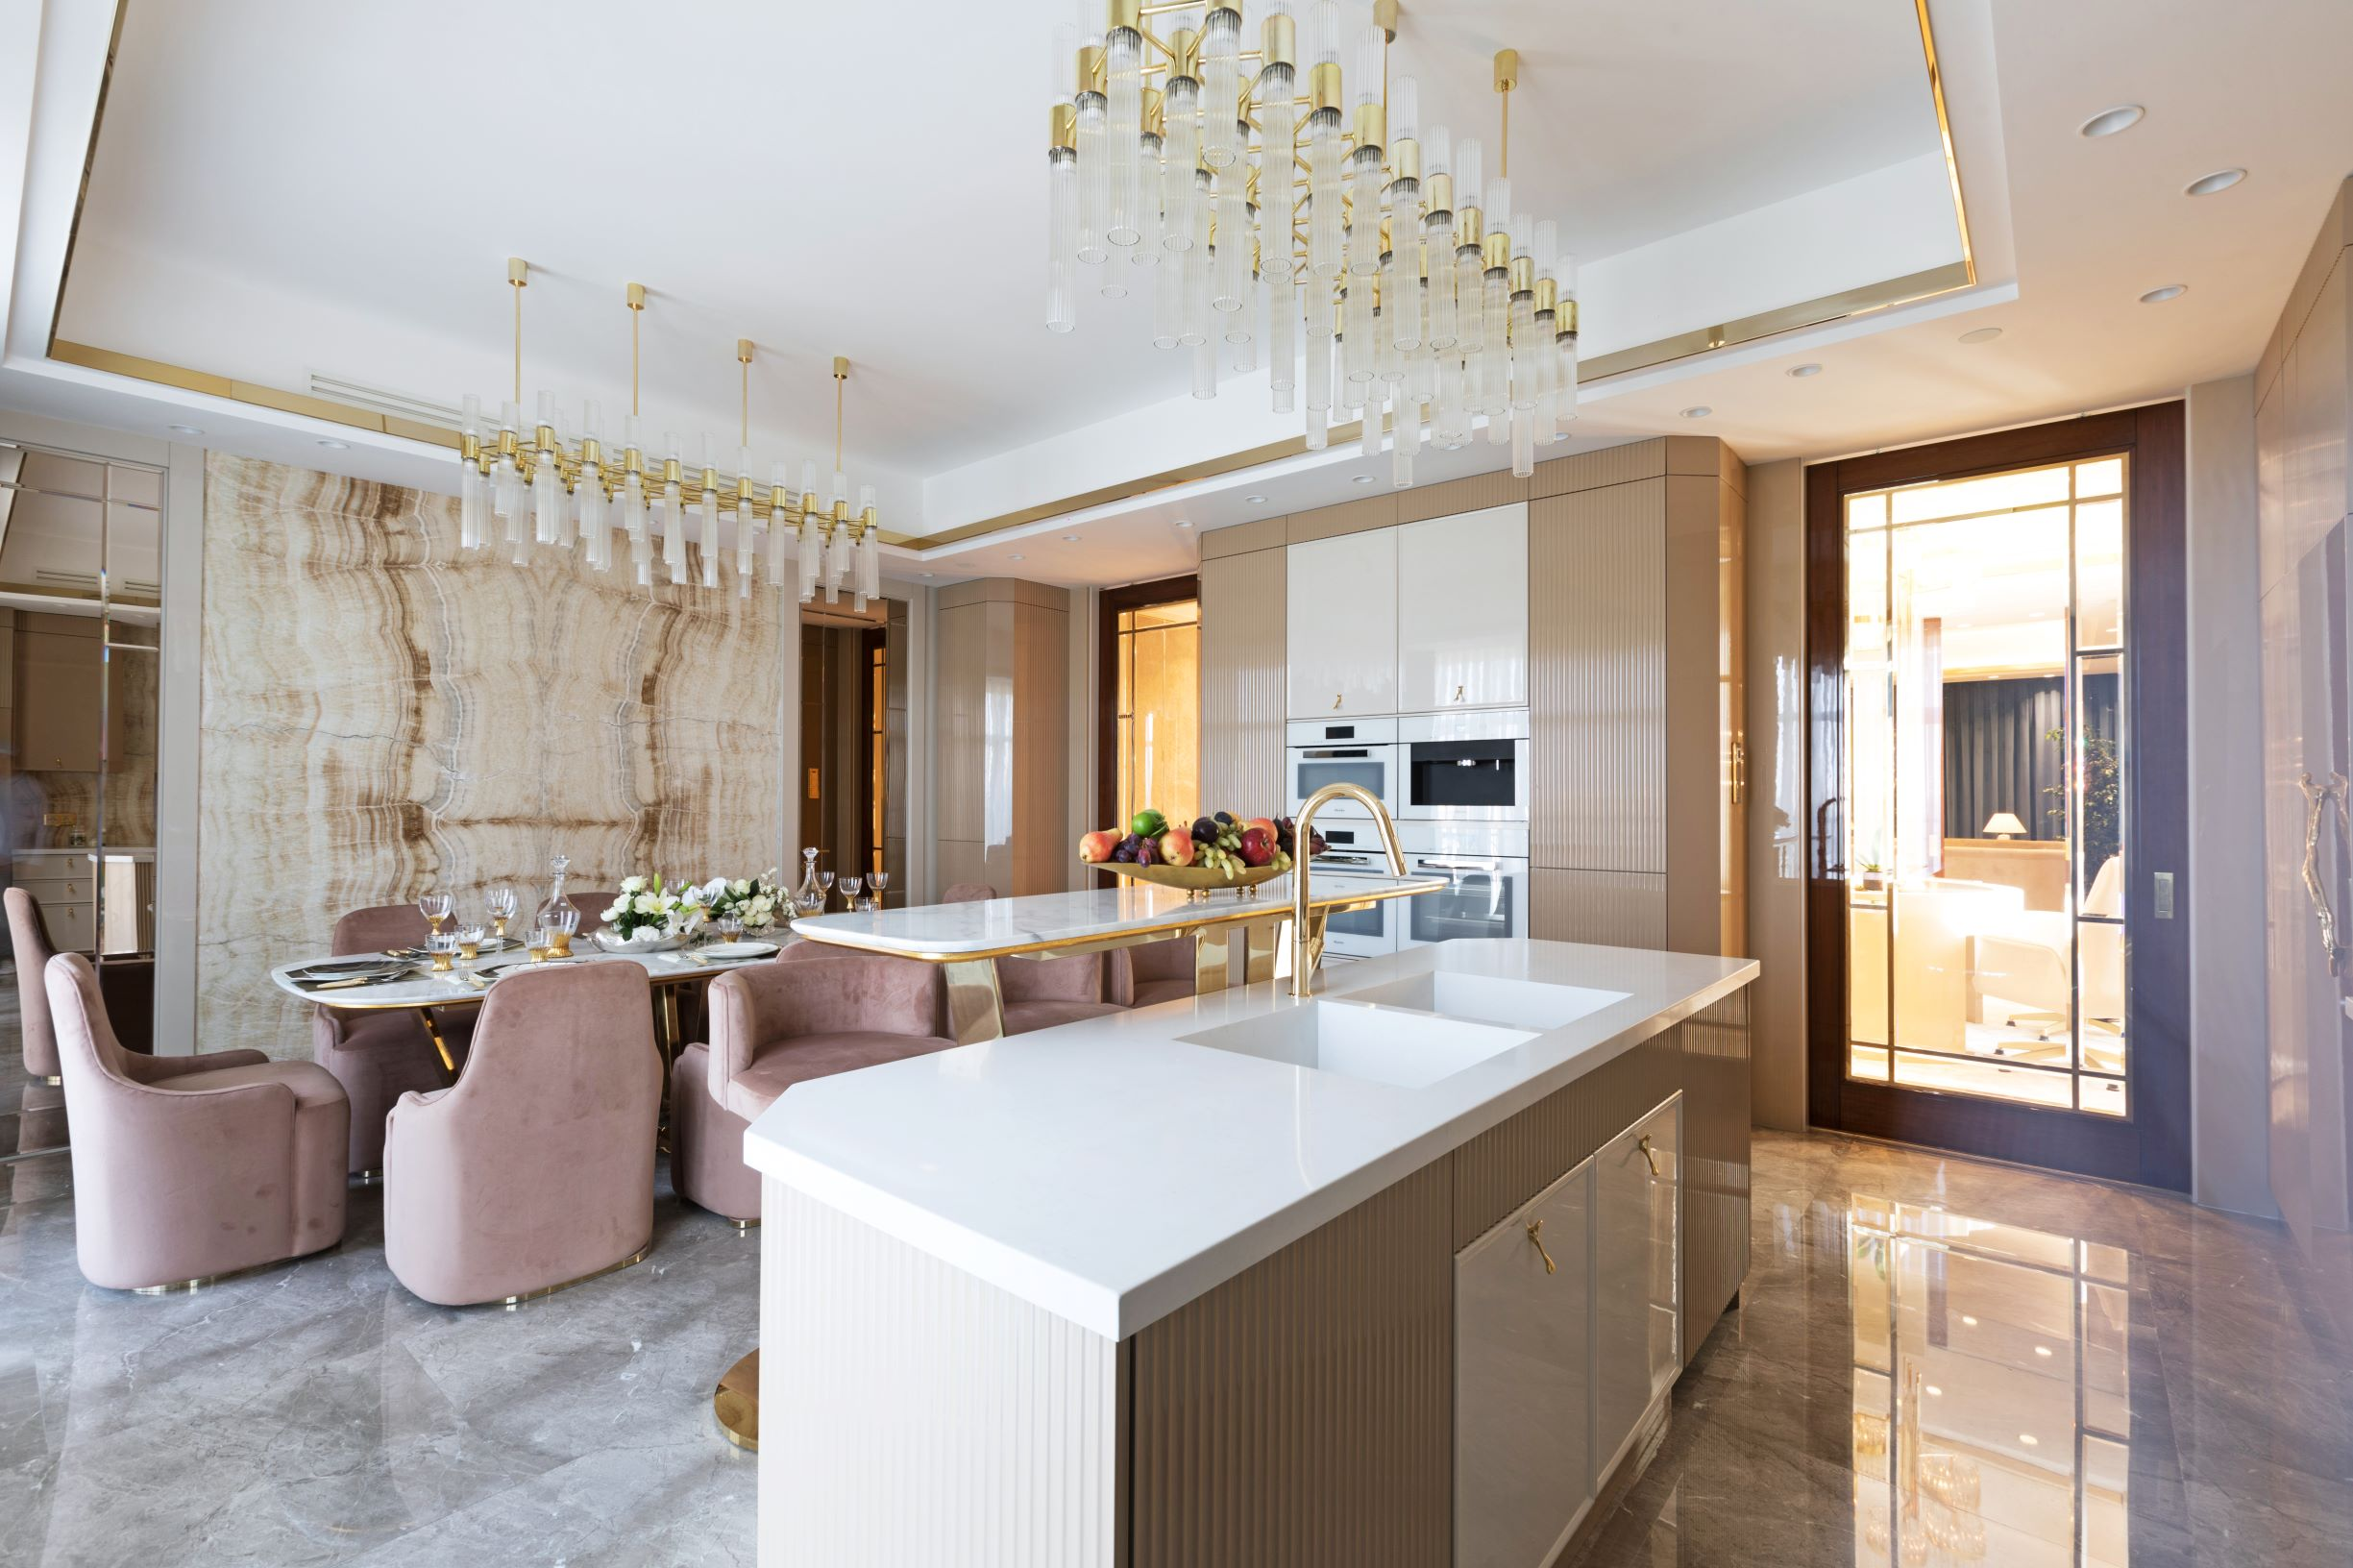 Discover The Best Design Projects In Istanbul design projects in istanbul Discover The Best Design Projects In Istanbul IMAGE 6